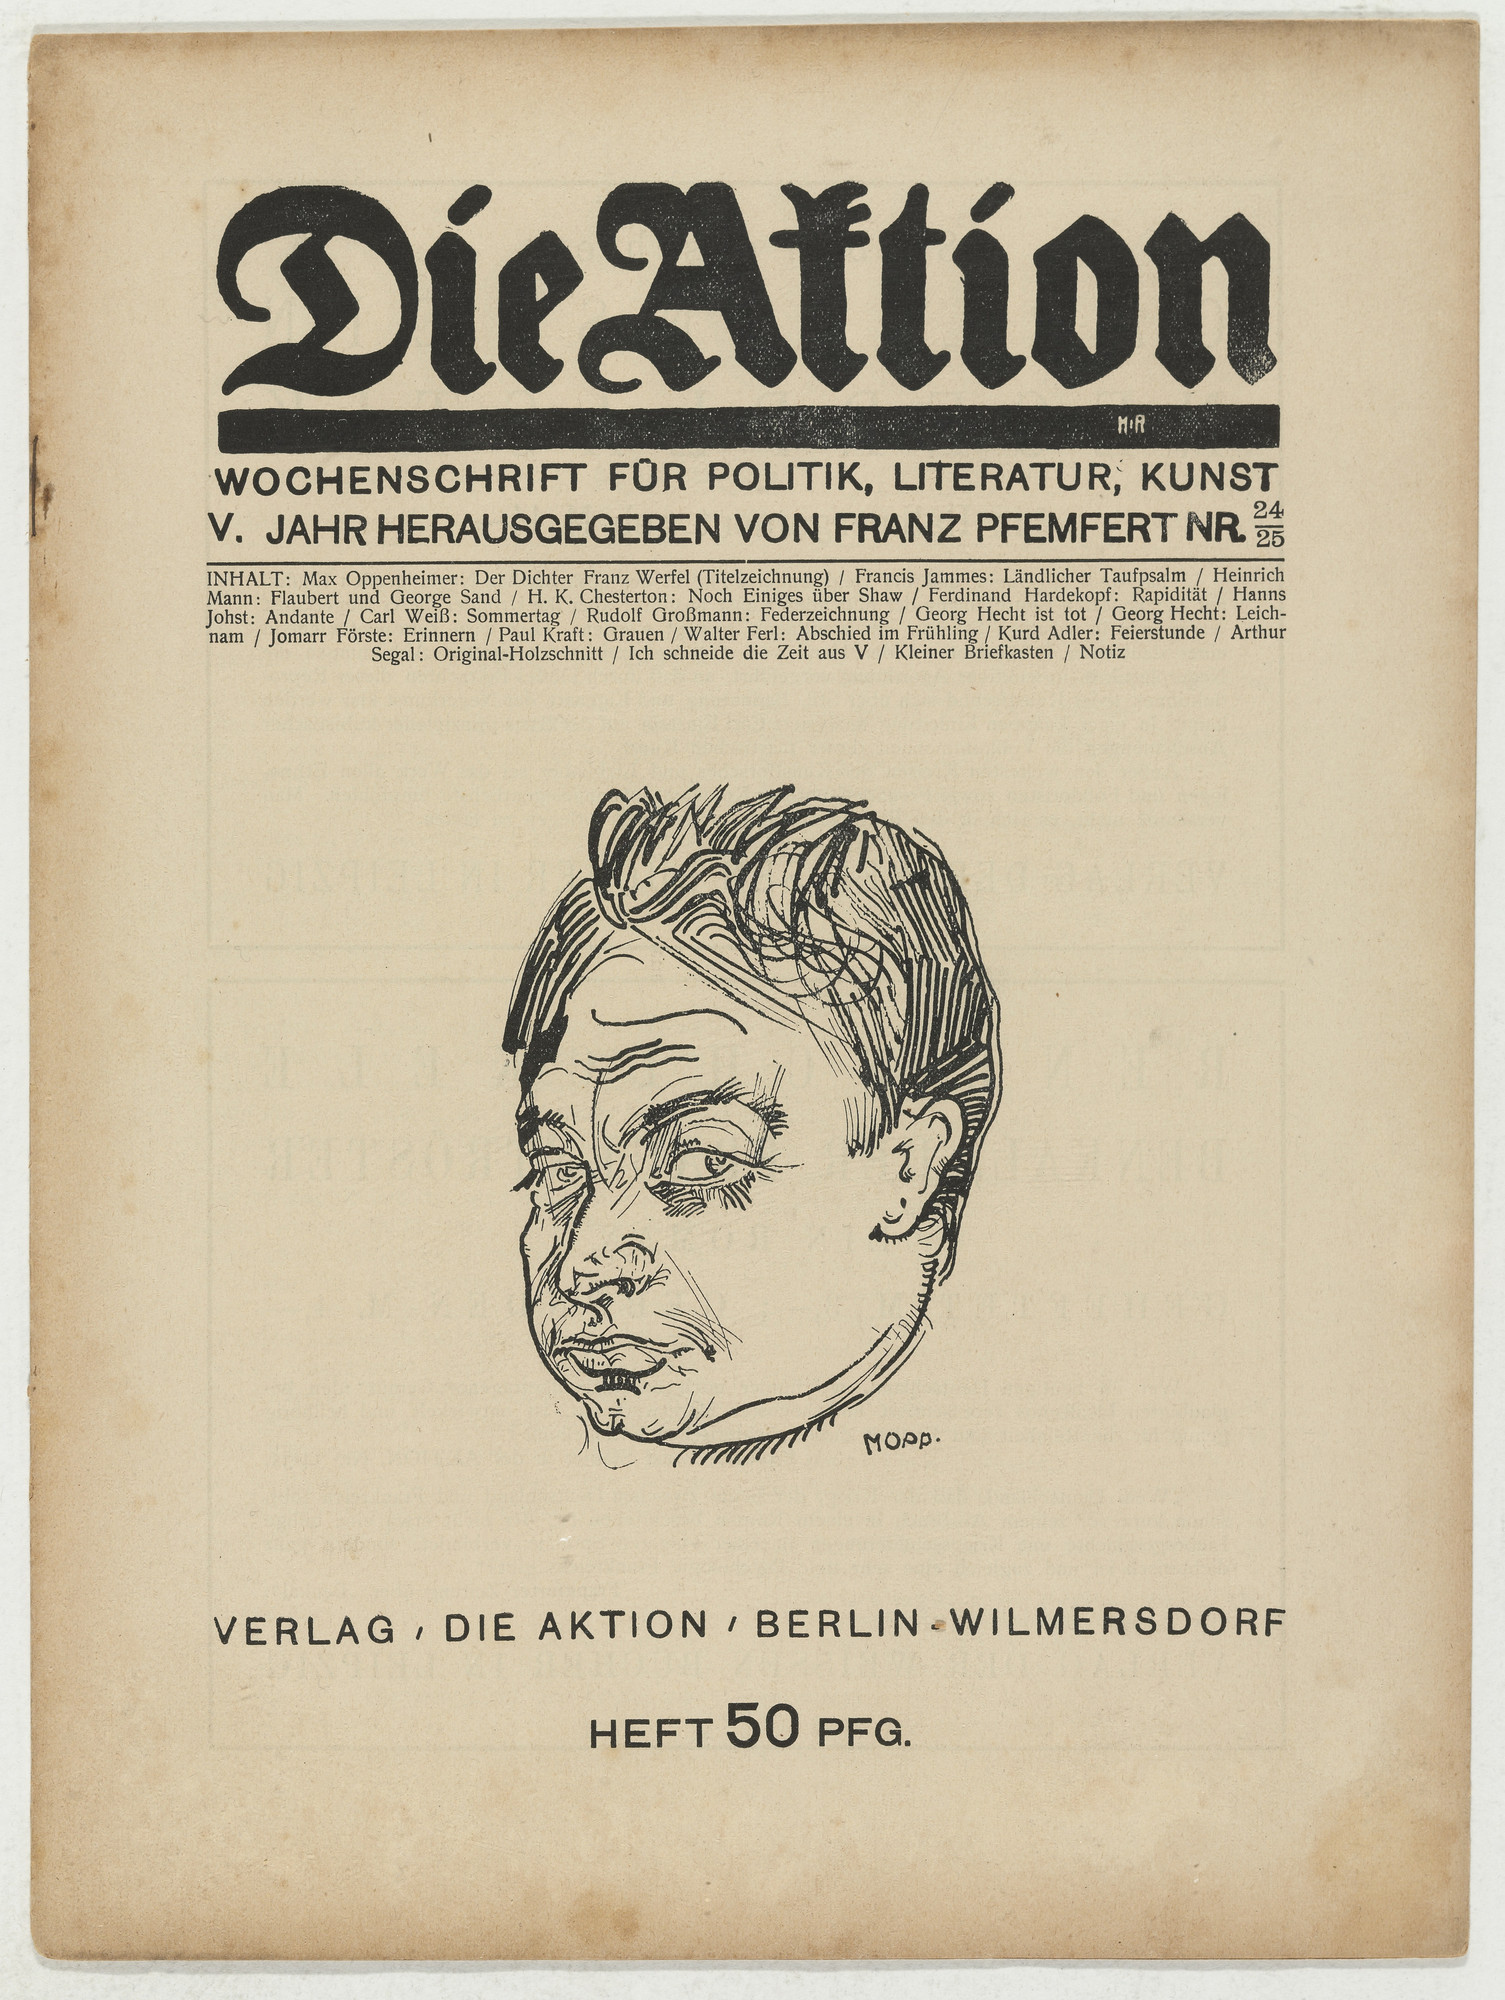 Arthur Segal. Die Aktion, vol. 5, no. 24/25. June 12, 1915